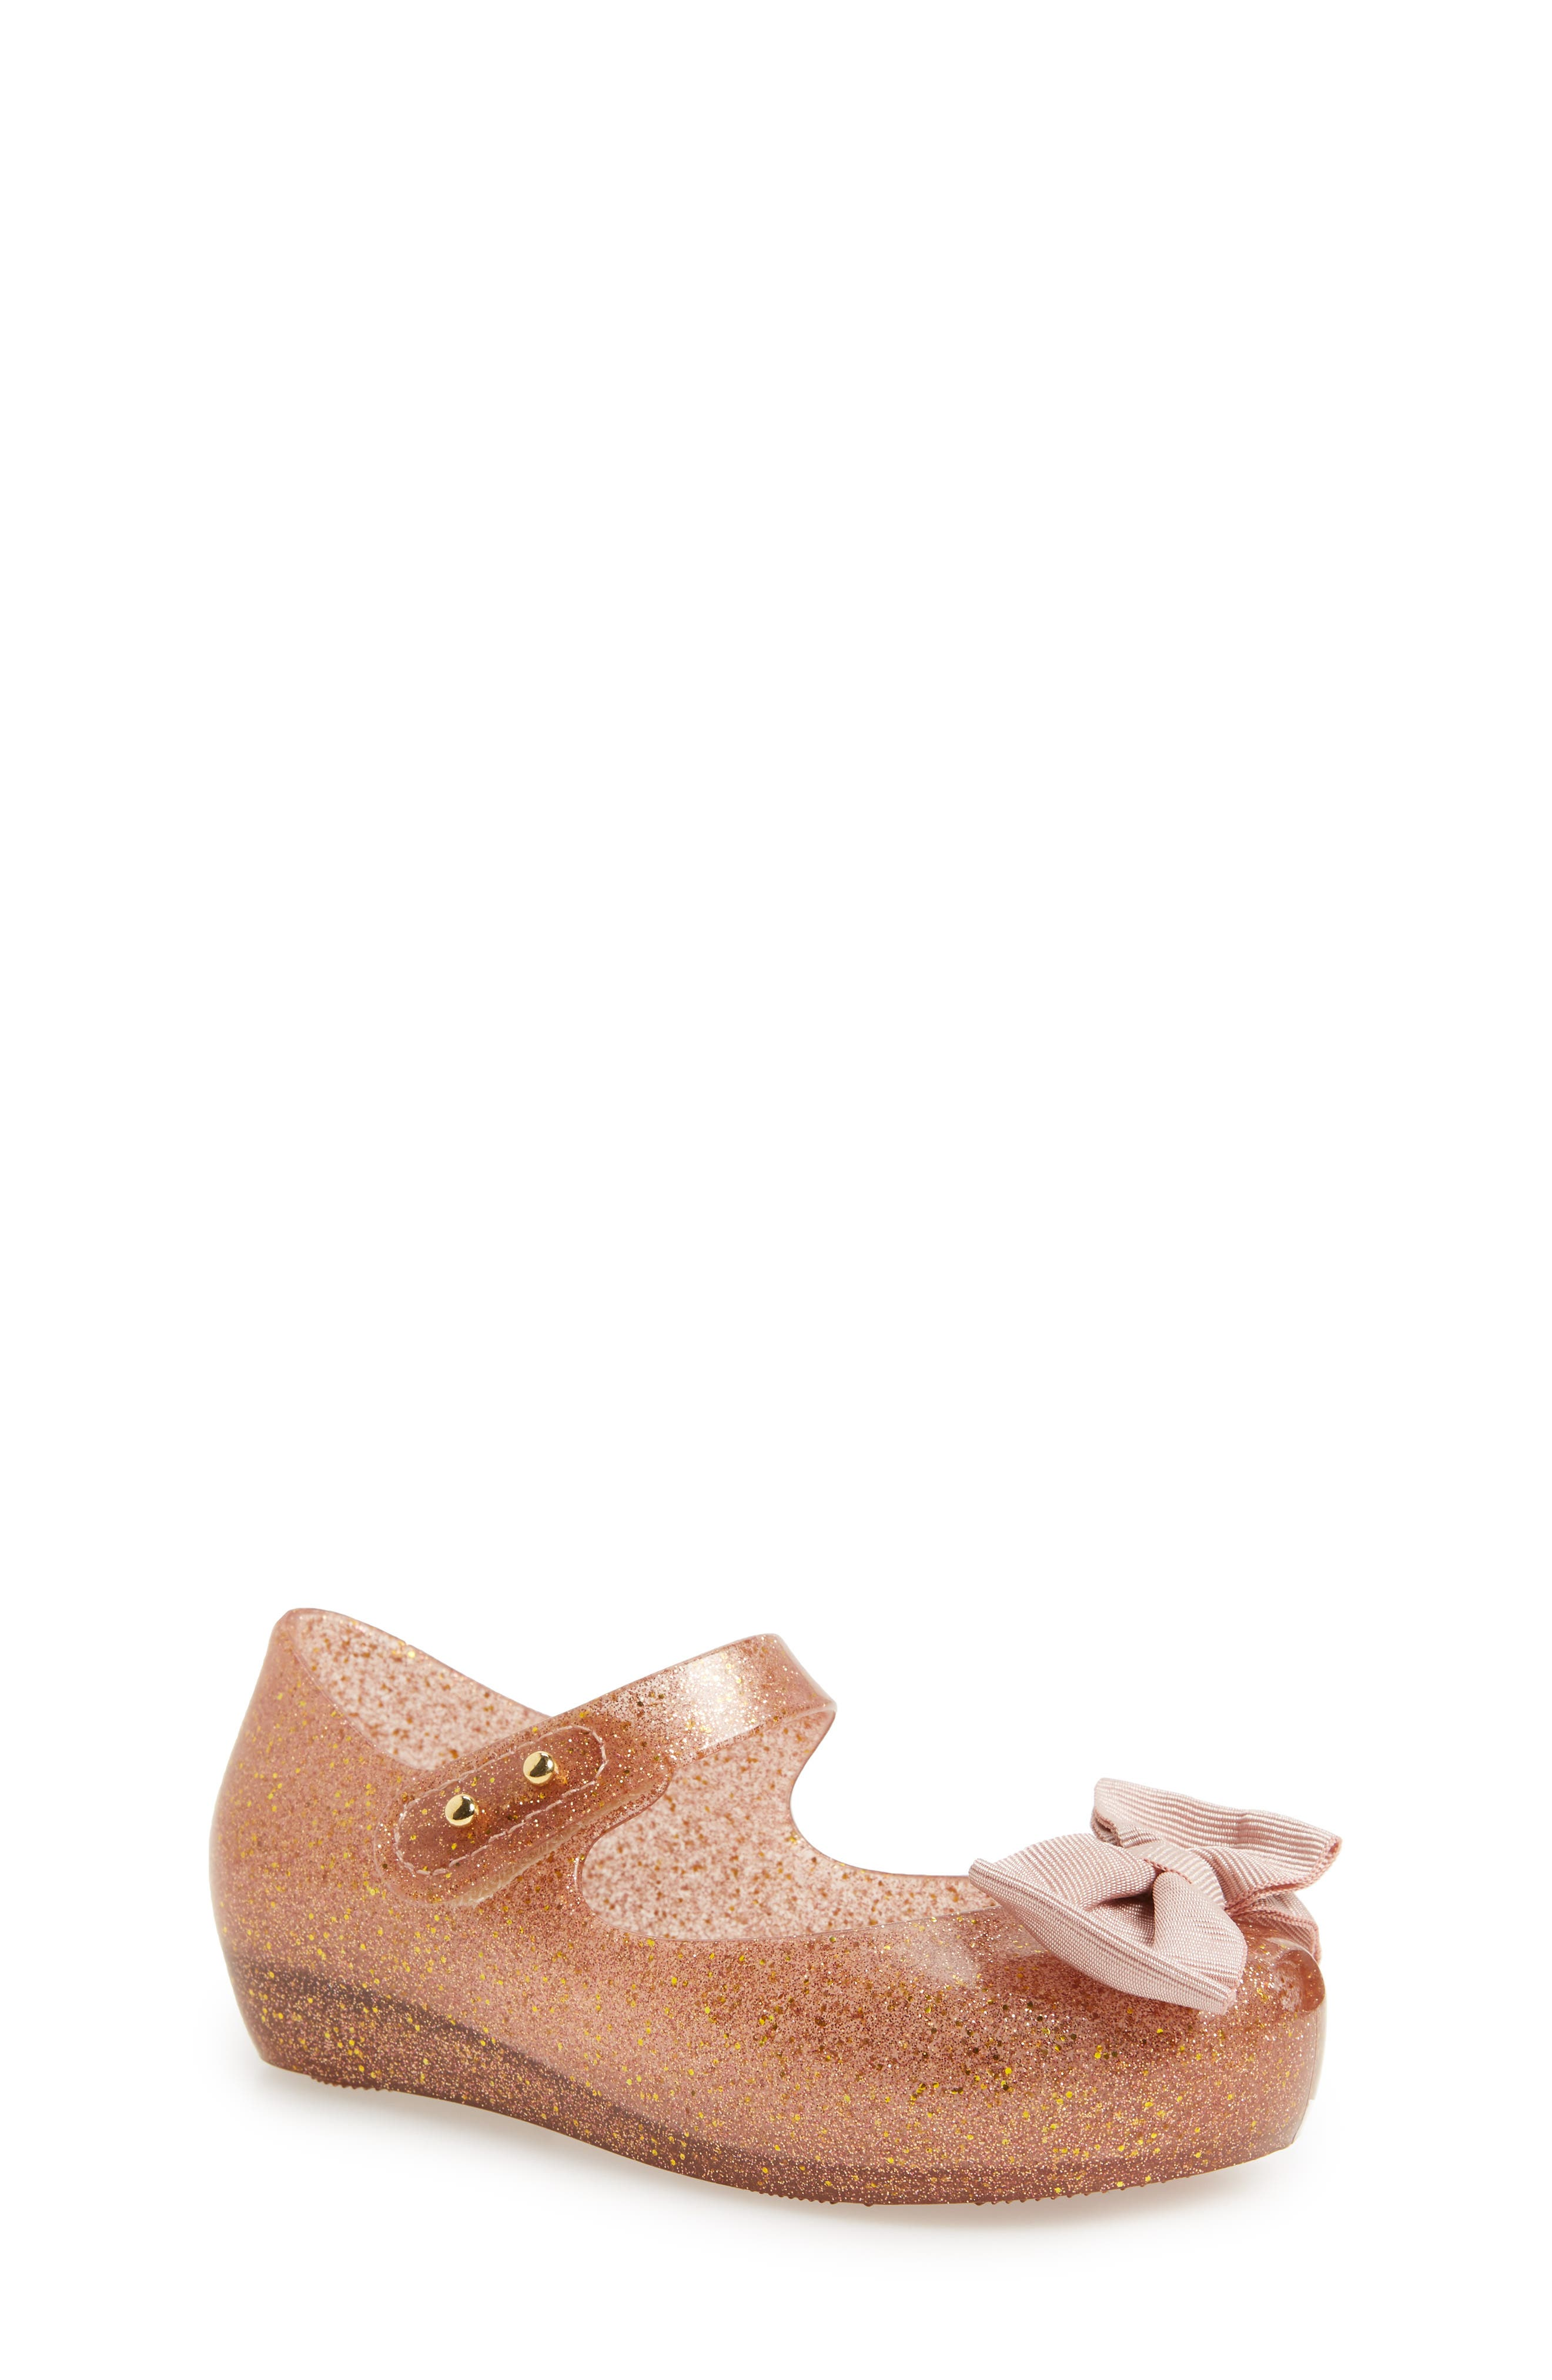 'Ultragirl Sweet' Mary Jane Flat,                         Main,                         color, Pink Twinkle